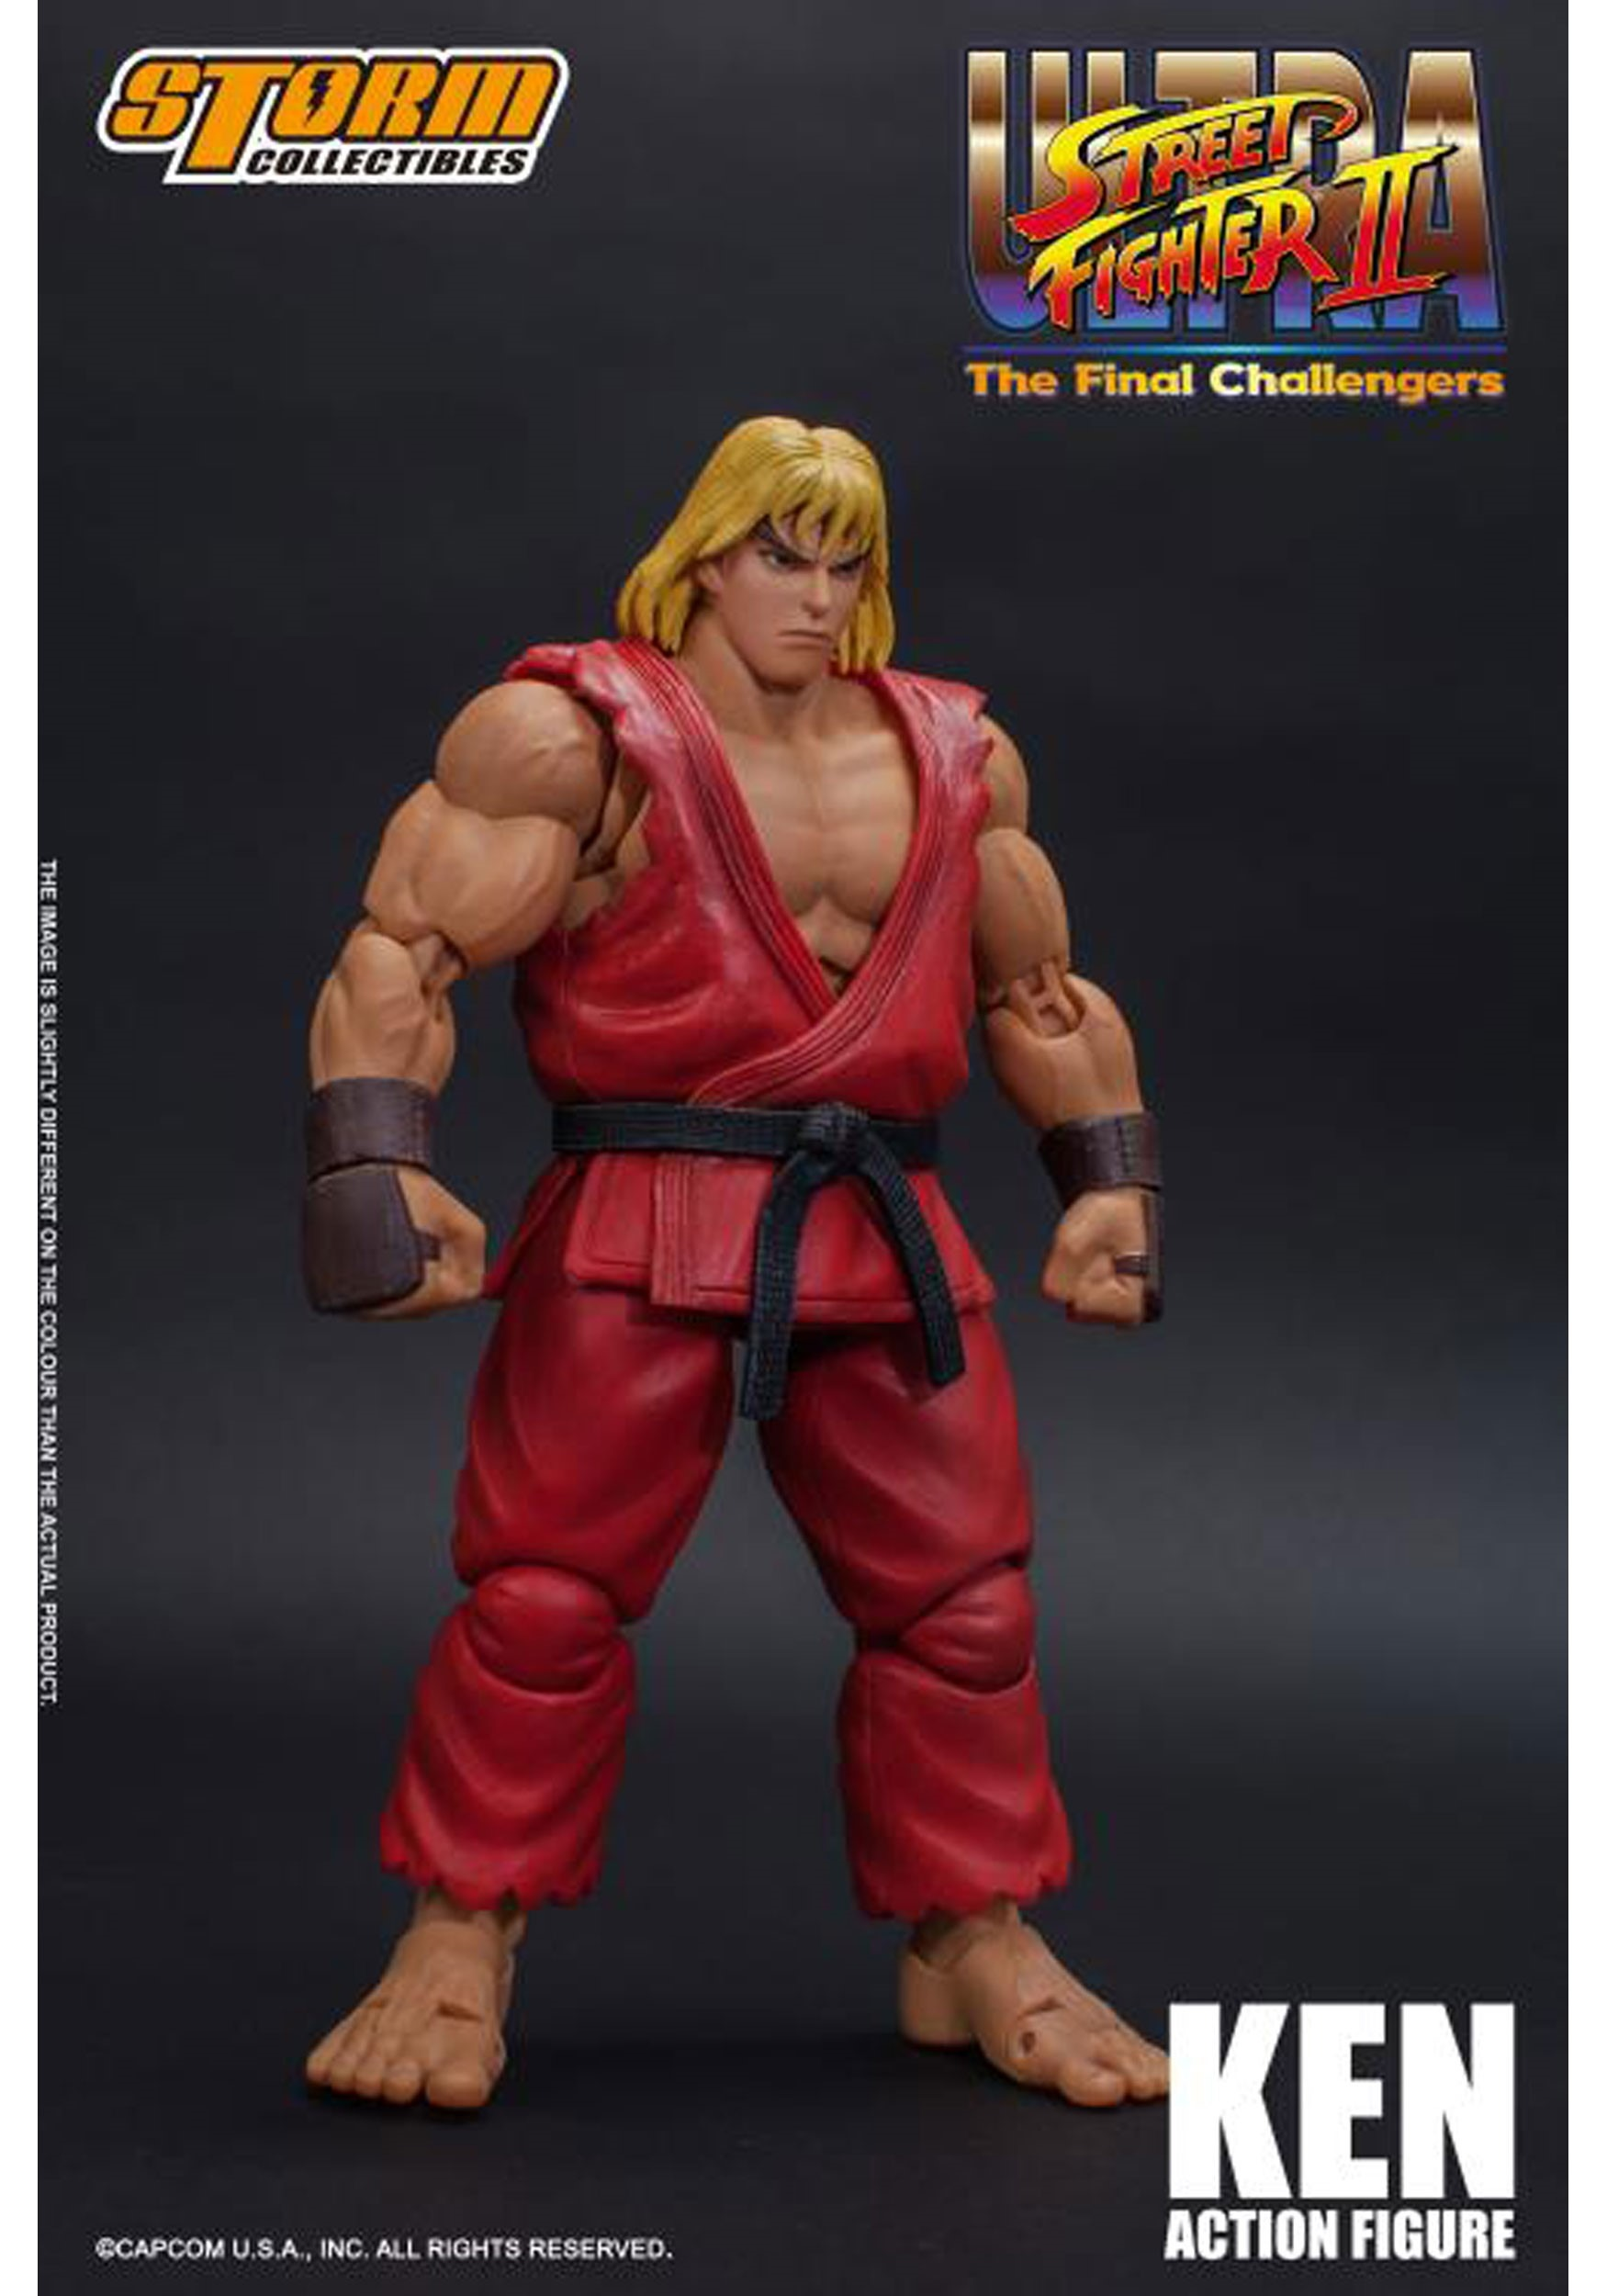 Ultra Street Fighter Ii Ken Action Figure Collectible